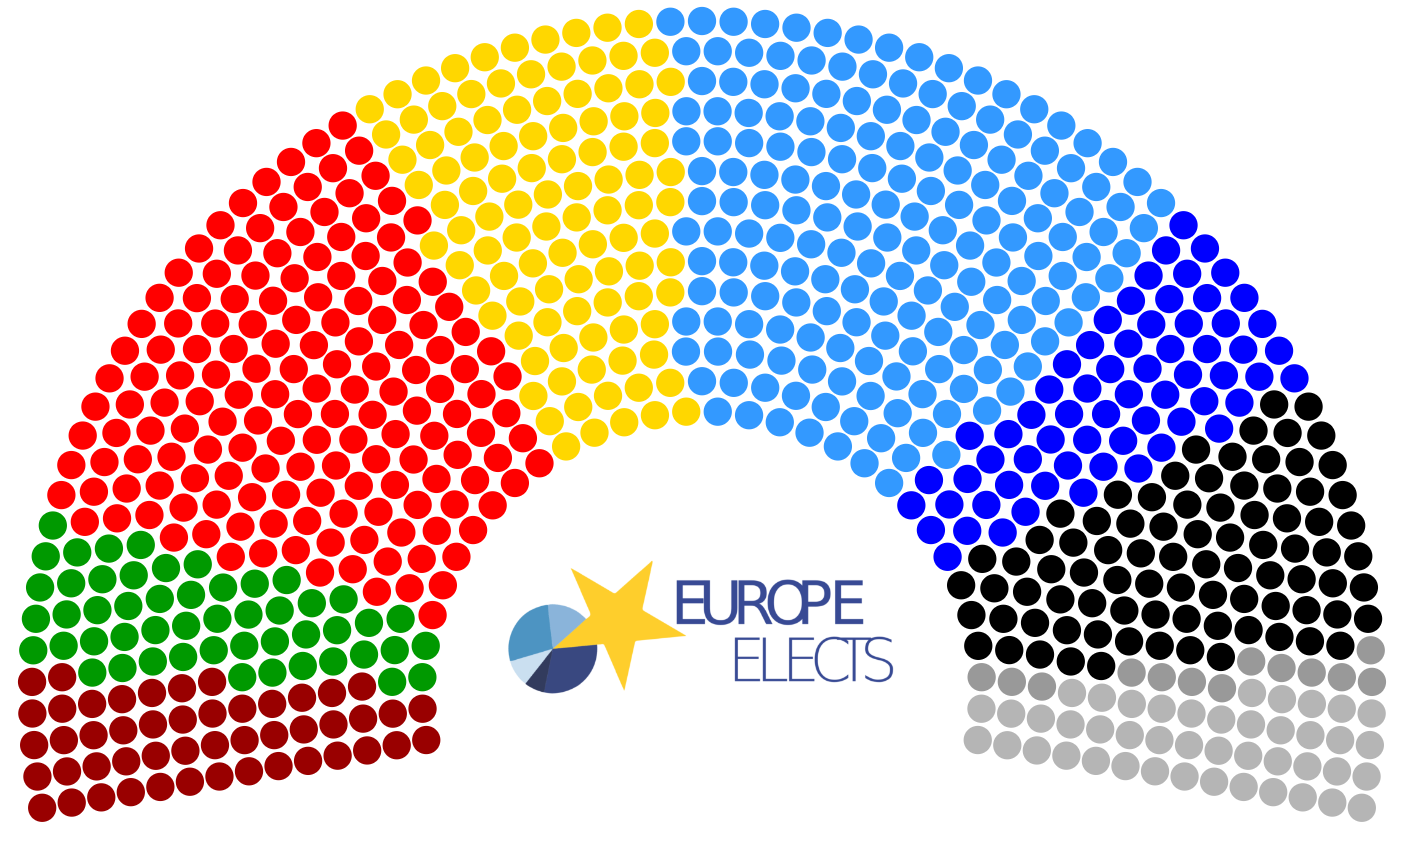 Home - Europe Elects